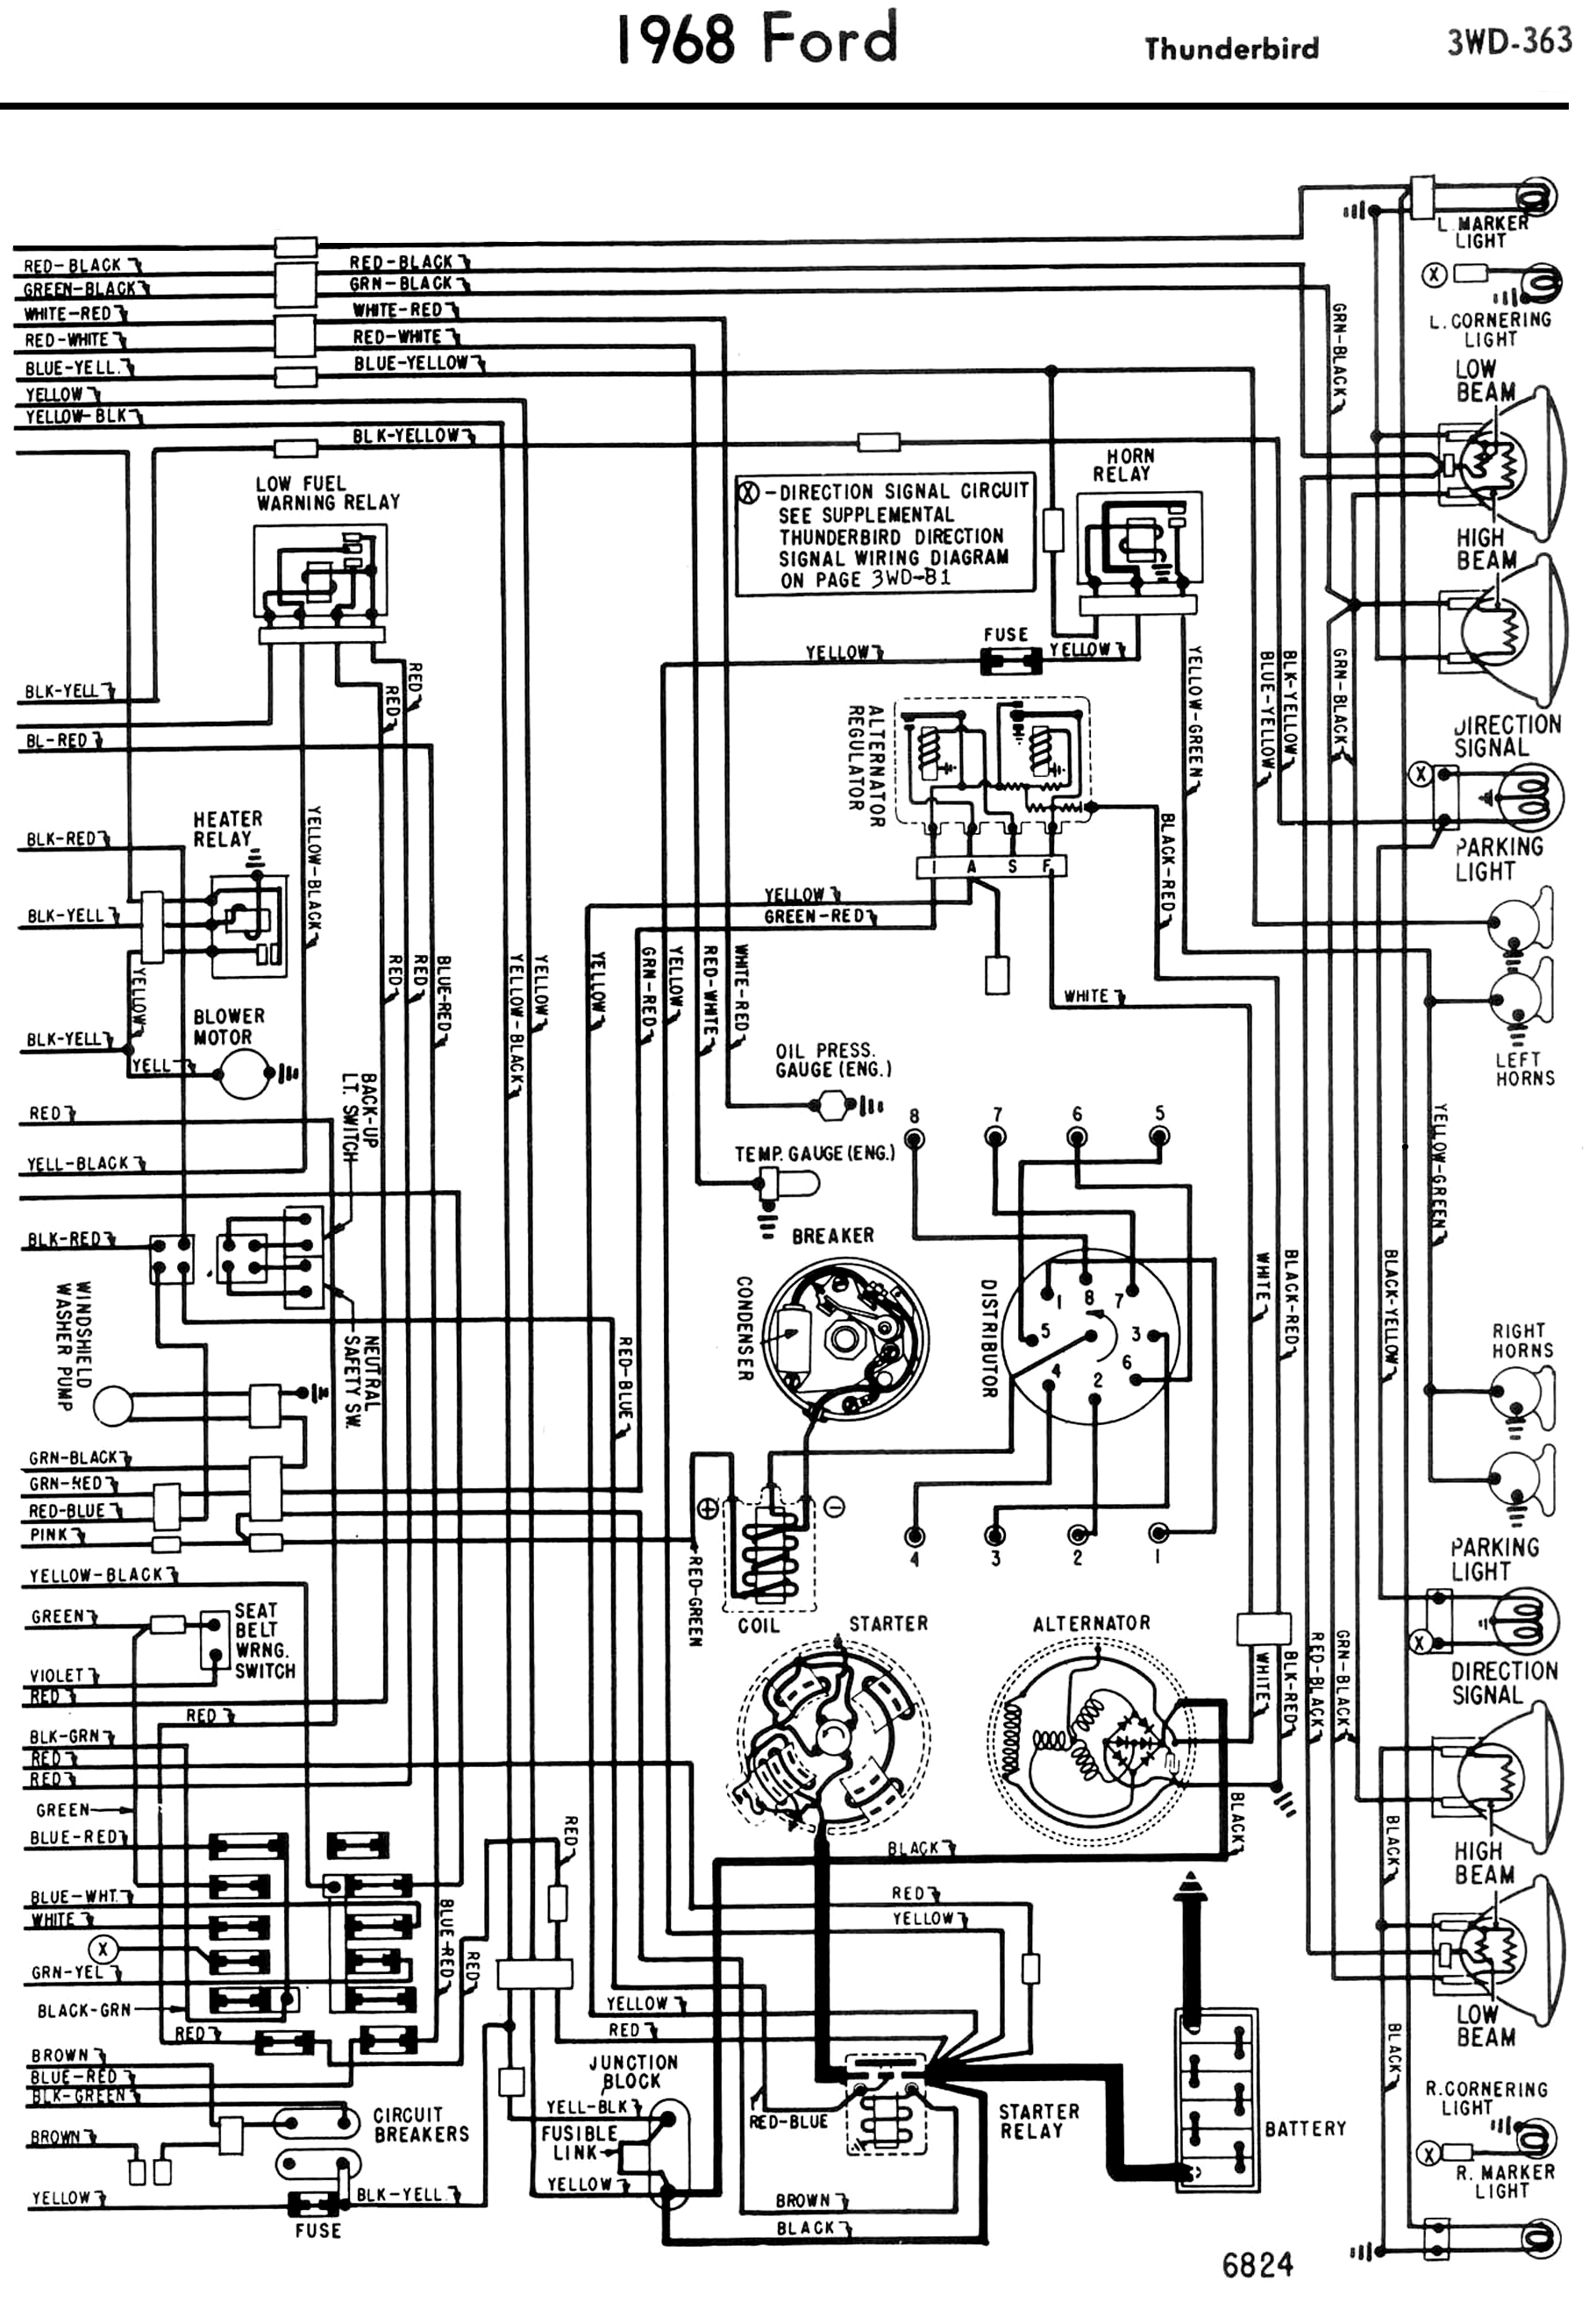 1968 Ford Mustang Ignition Wiring Diagram Library C10 1958 68 Electrical Schematics For 2004 F250 Diagrams